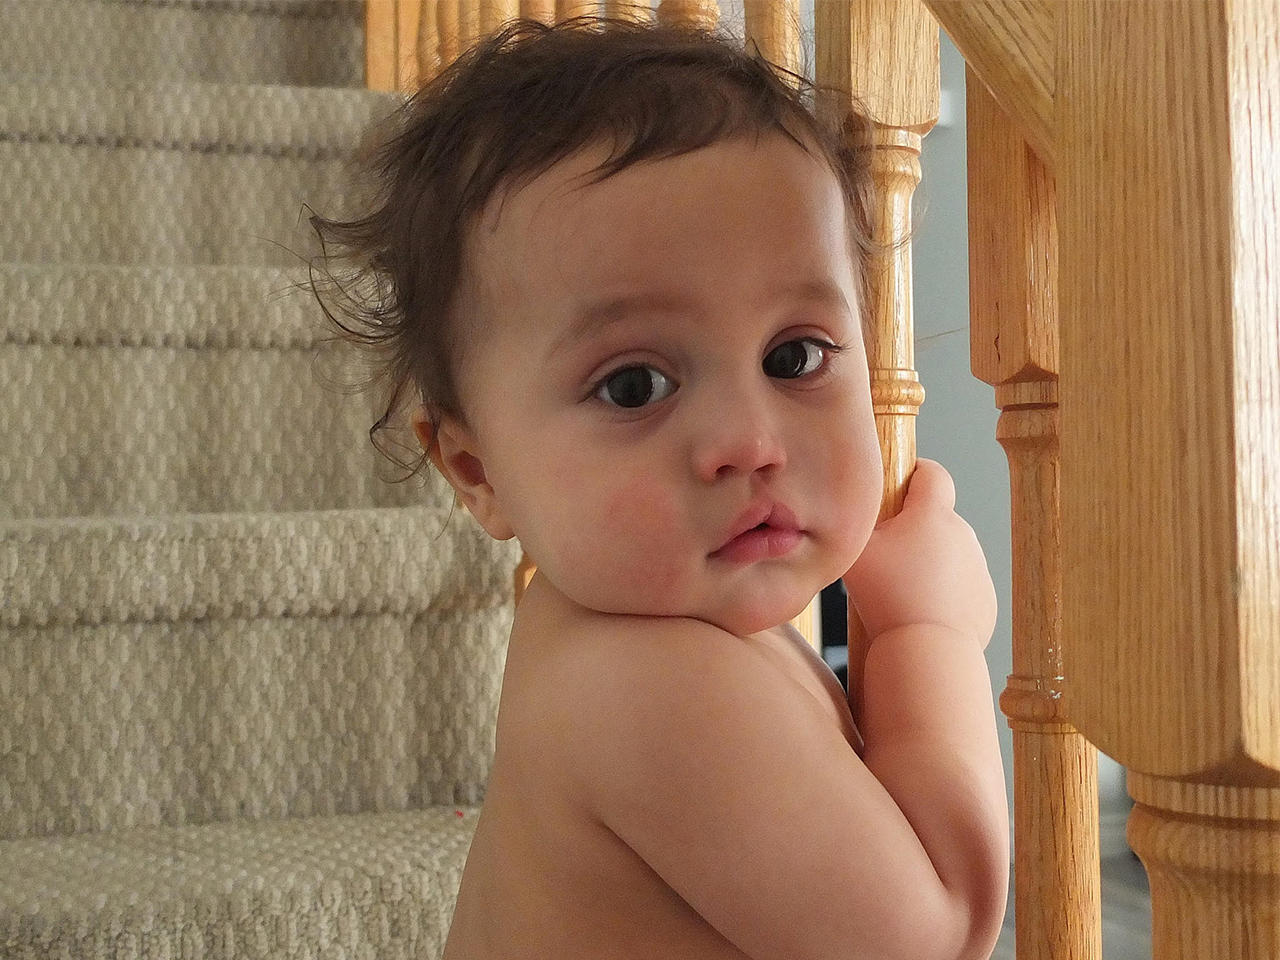 A toddler holds a bannister and looks at the camera